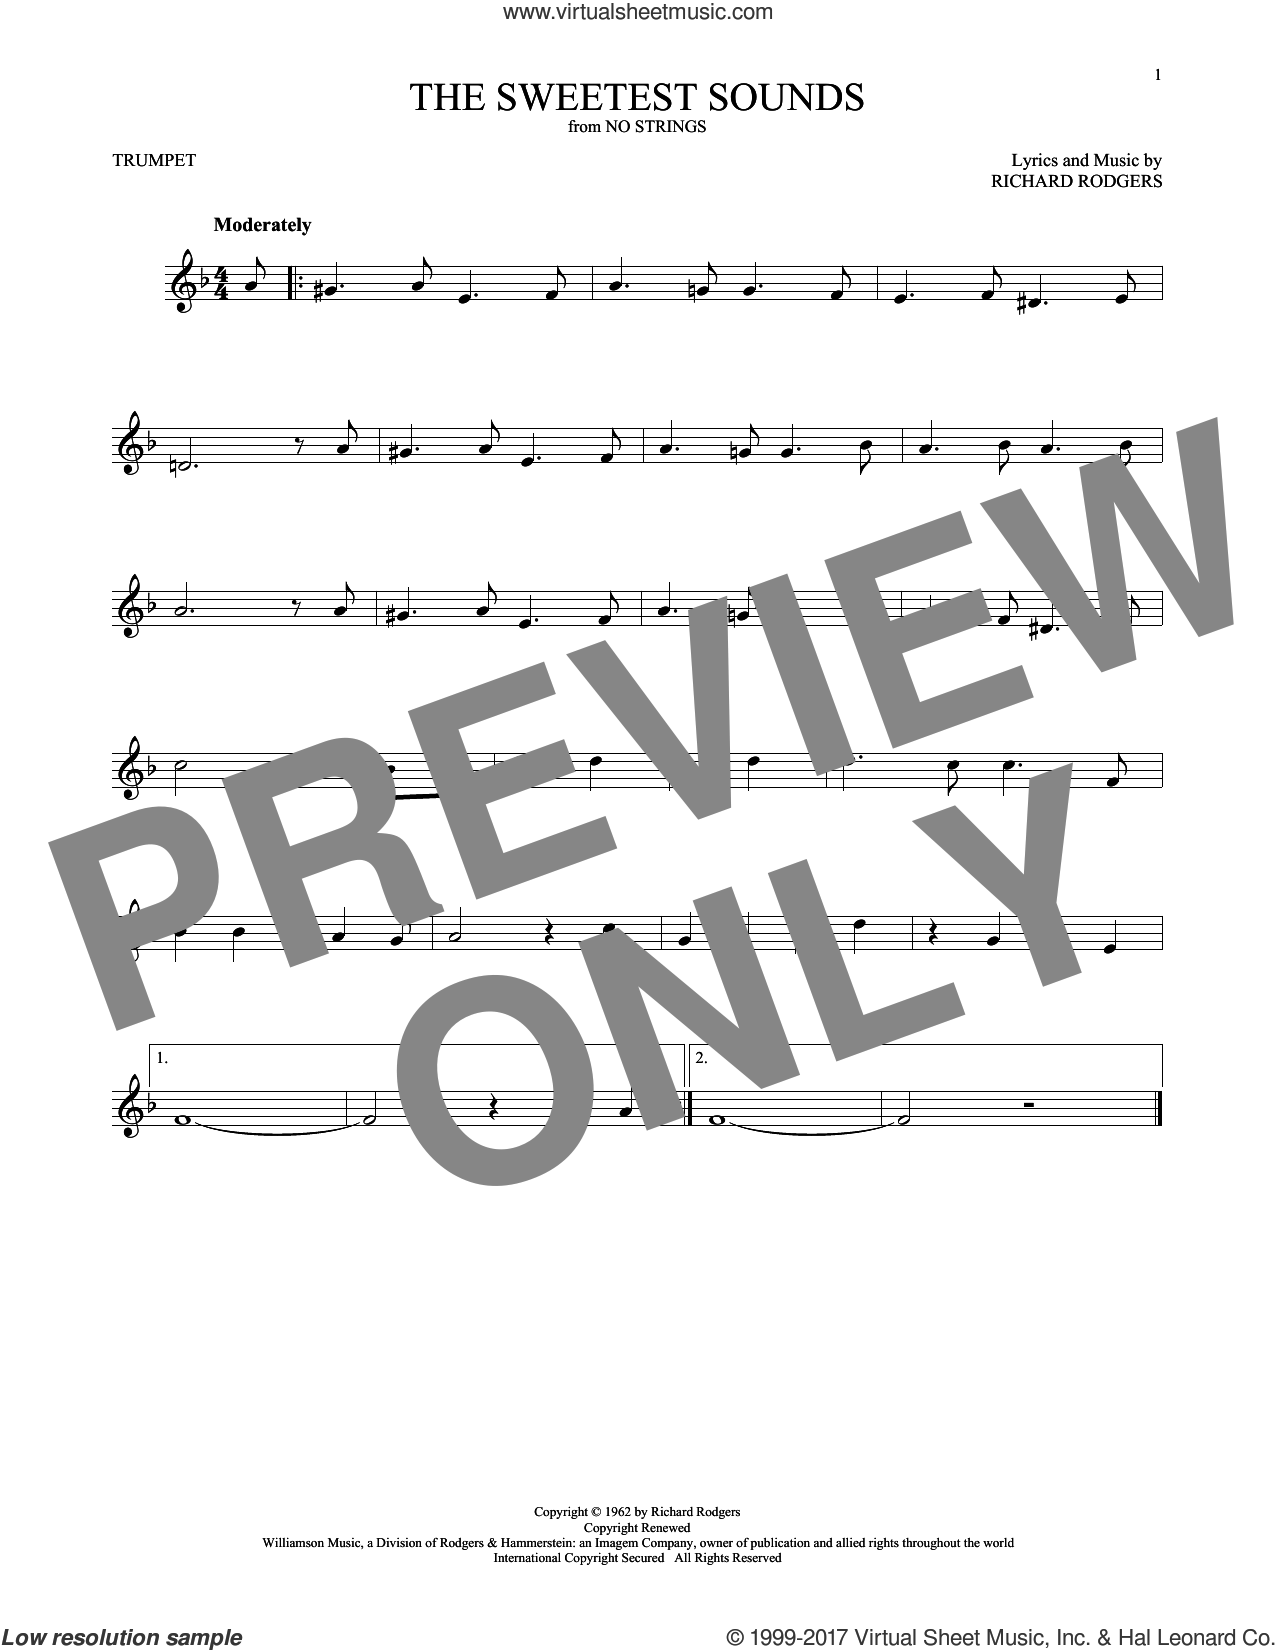 The Sweetest Sounds sheet music for trumpet solo by Richard Rodgers, intermediate skill level